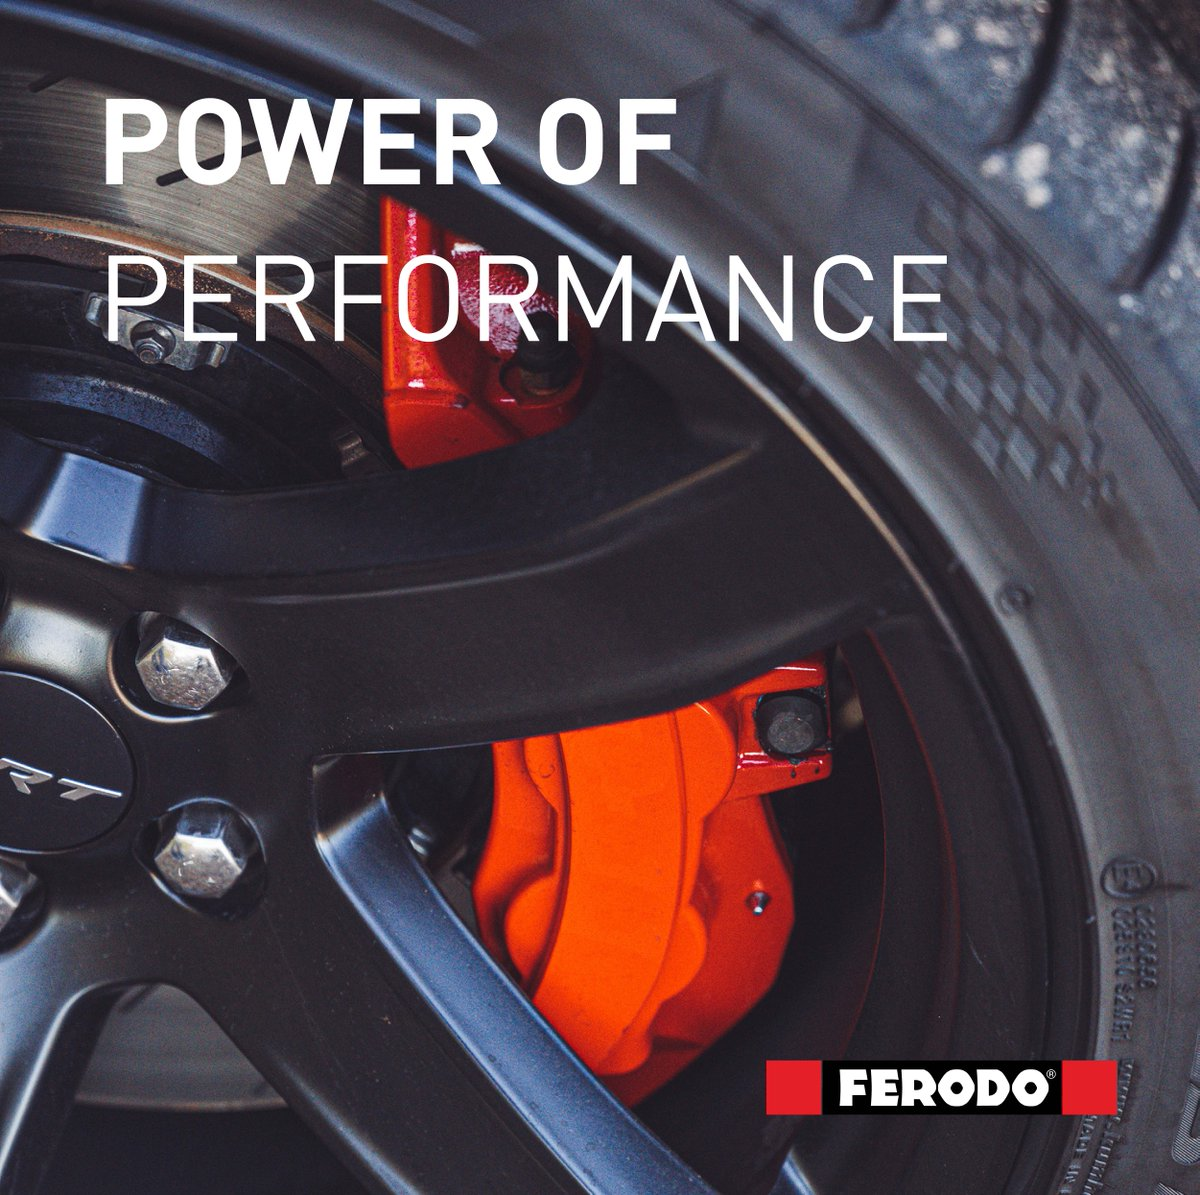 Bring Ferodo's power of performance to your vehicle with Ferodo brake discs & pads. Head to https://t.co/tr0aQP8EN0 and find your nearest outlet today. https://t.co/puUkpIiNtO